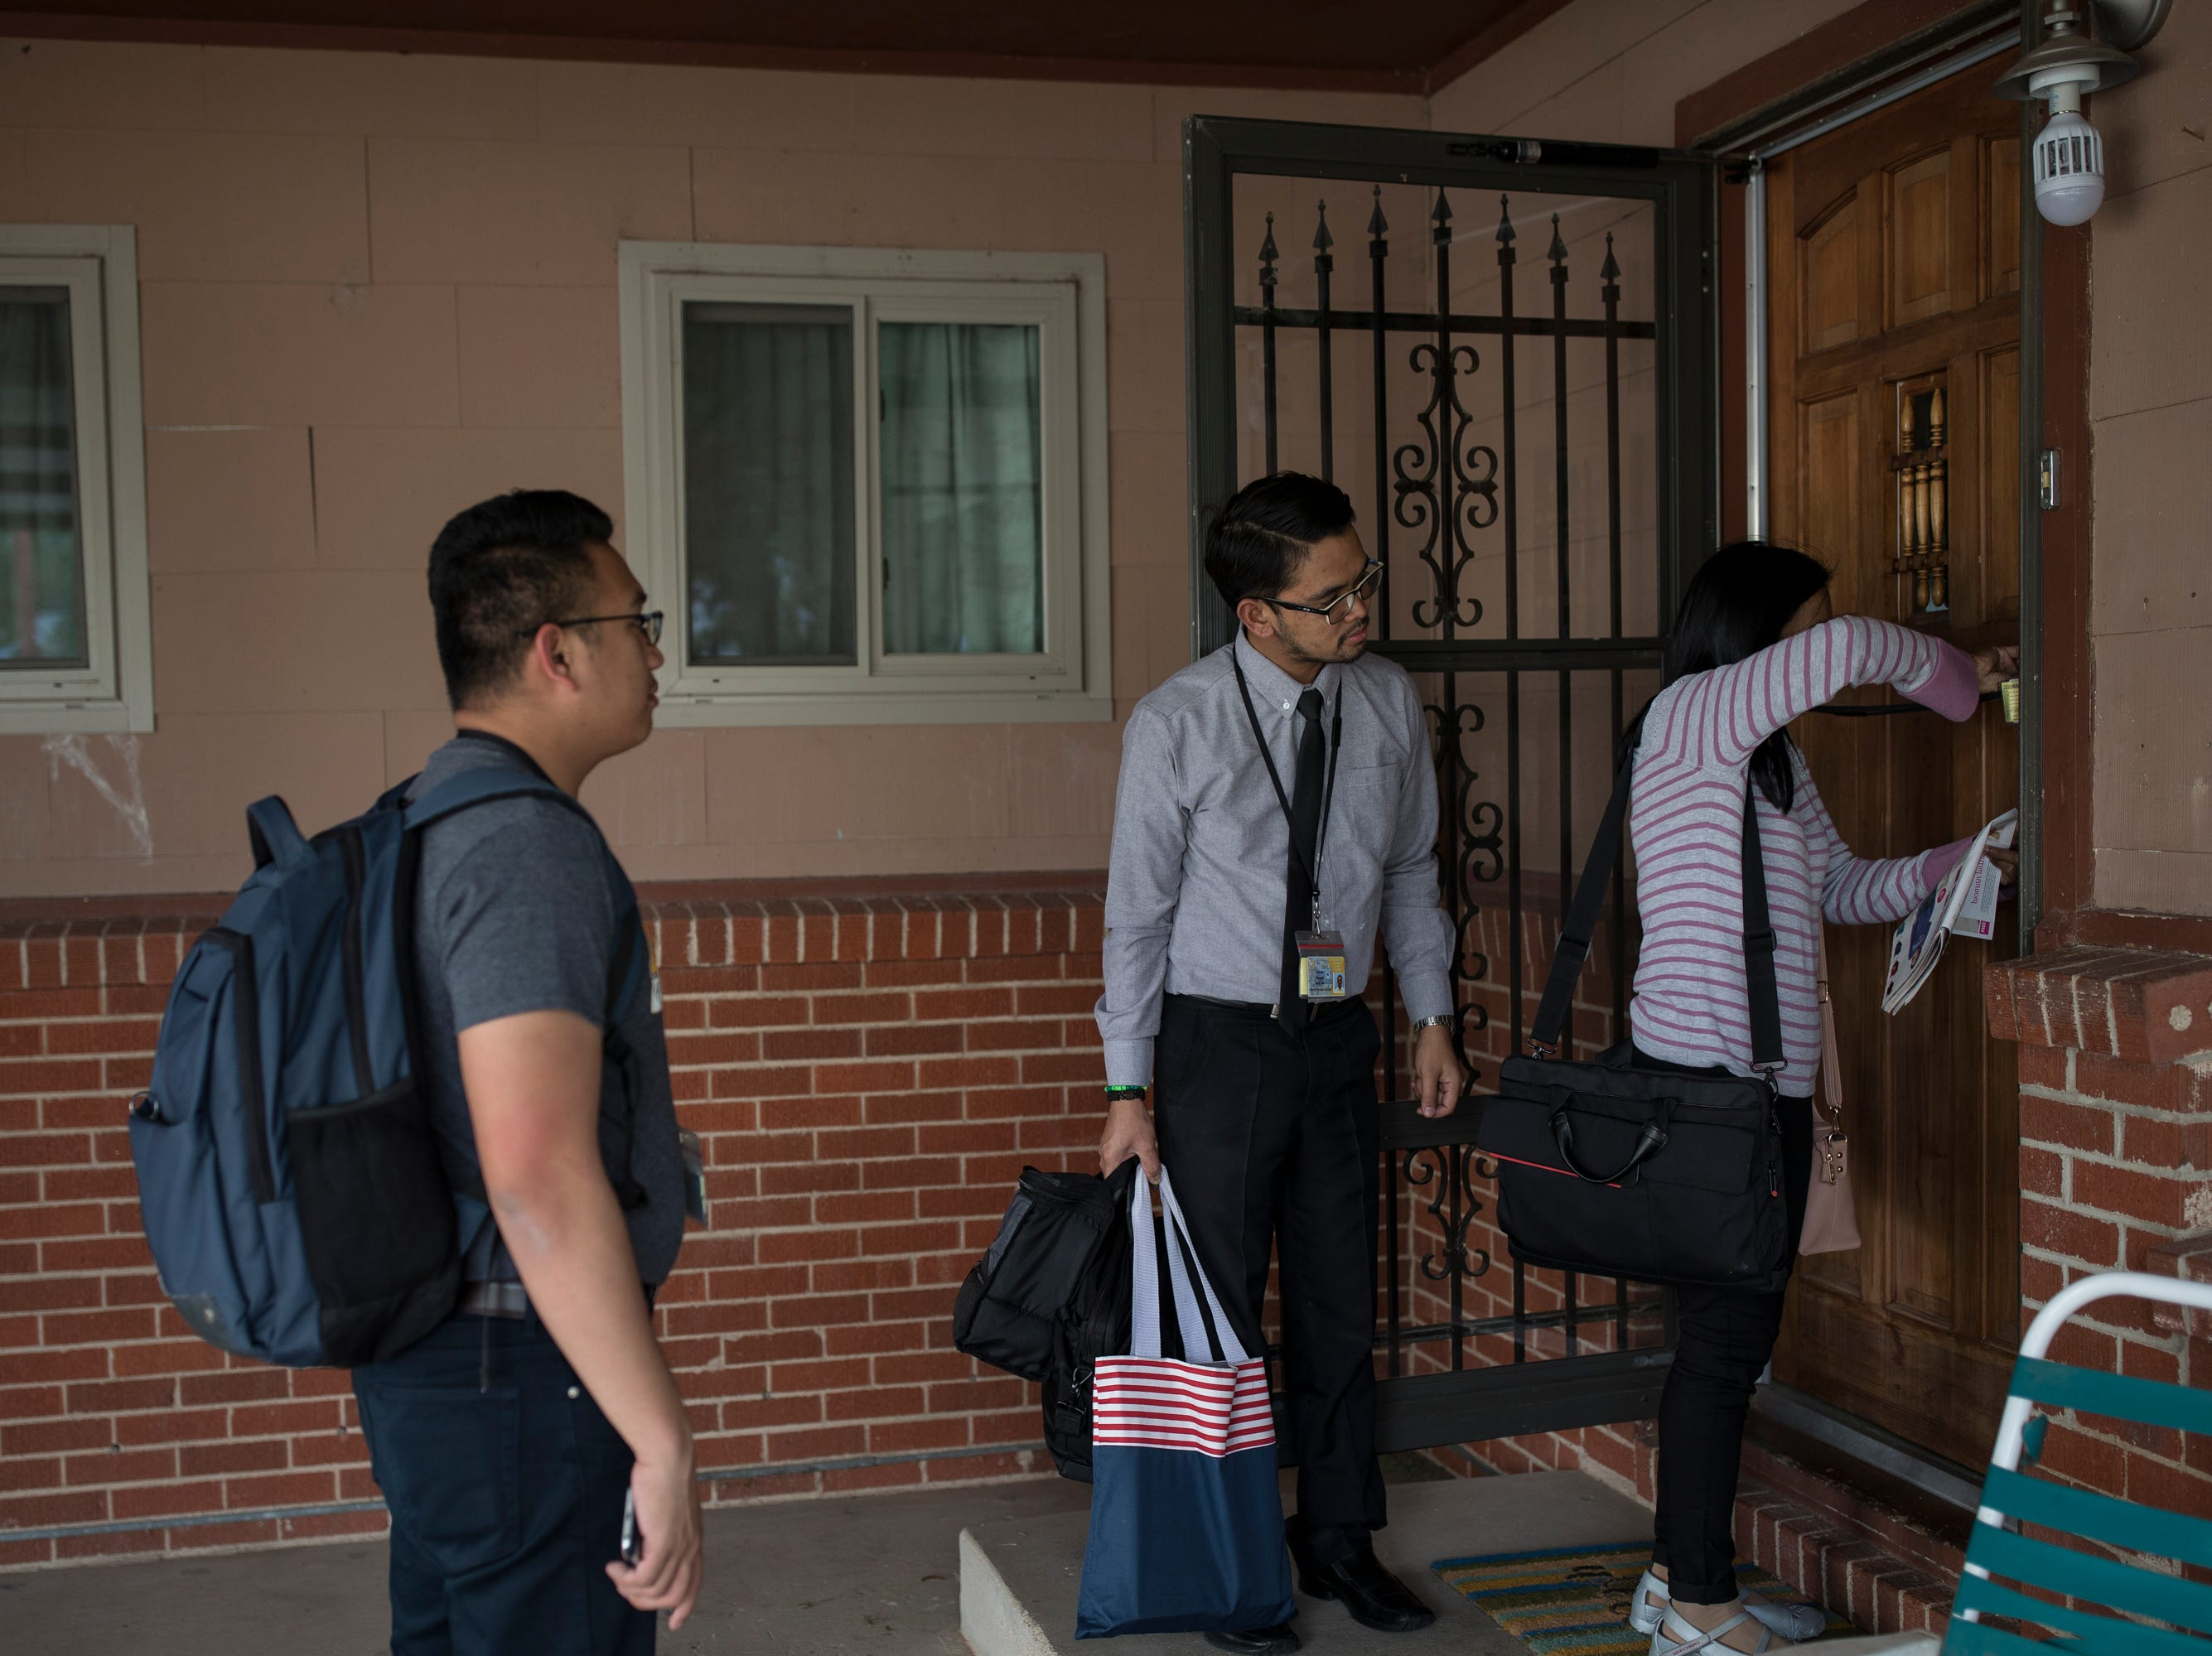 From right, Margaret Pel, Ronell Mangilit and Kim Alrod Araza arrive at the home they share with one other teacher in the town of Hobbs, NM. Many of the Filipino teachers must share housing as some are burdened with monthly debt payments to recruiters whose fees are anywhere from $5000-$15,000 not including extra expenses that aren't calculated for.